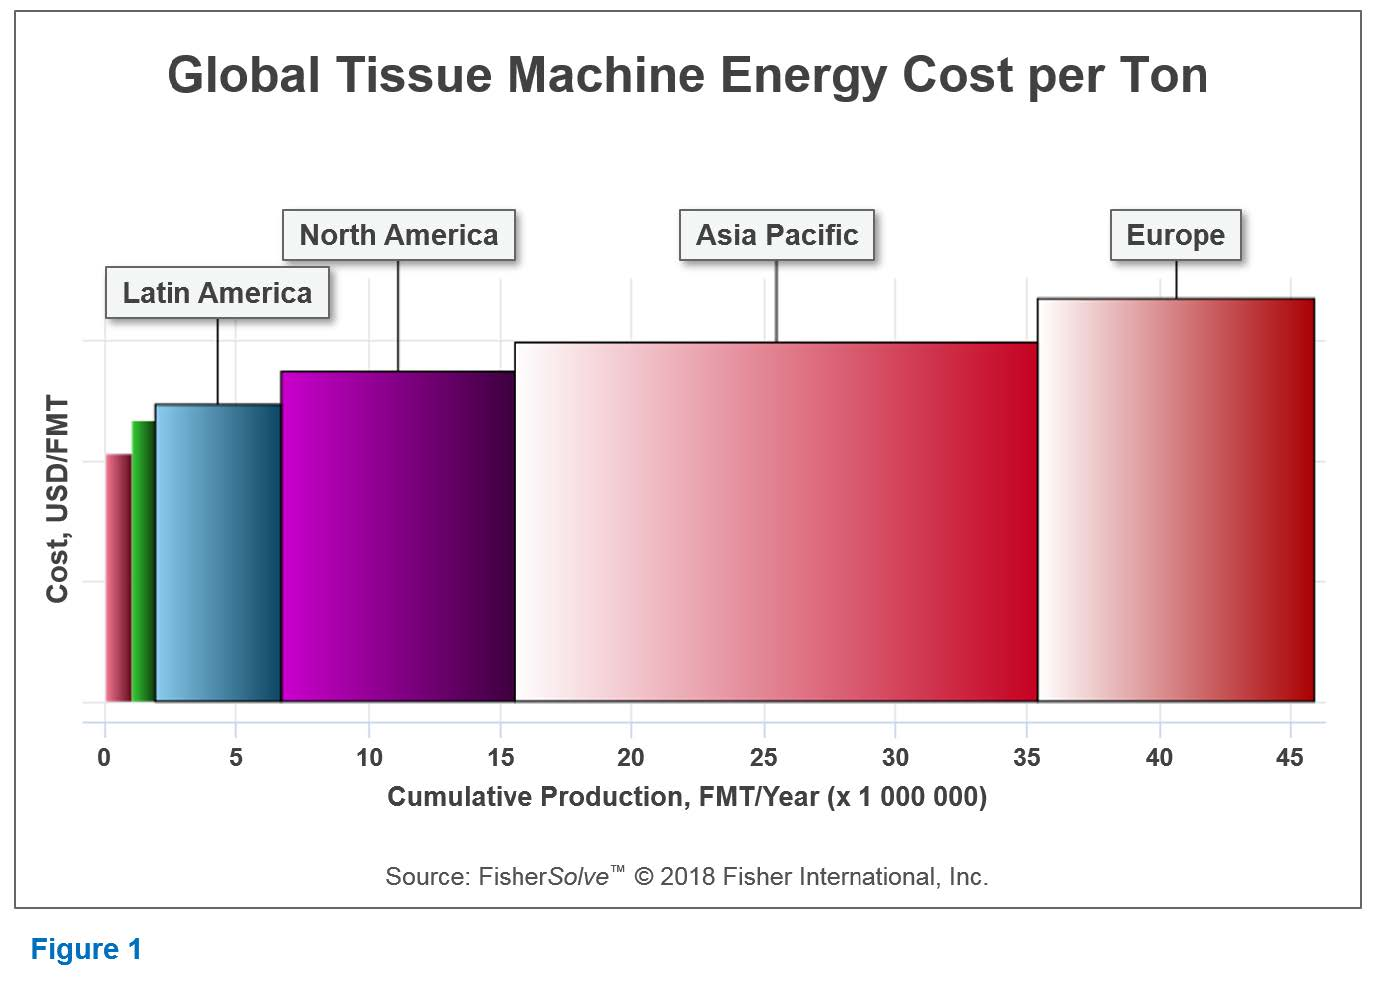 Global Tissue Machine Energy Cost per Ton